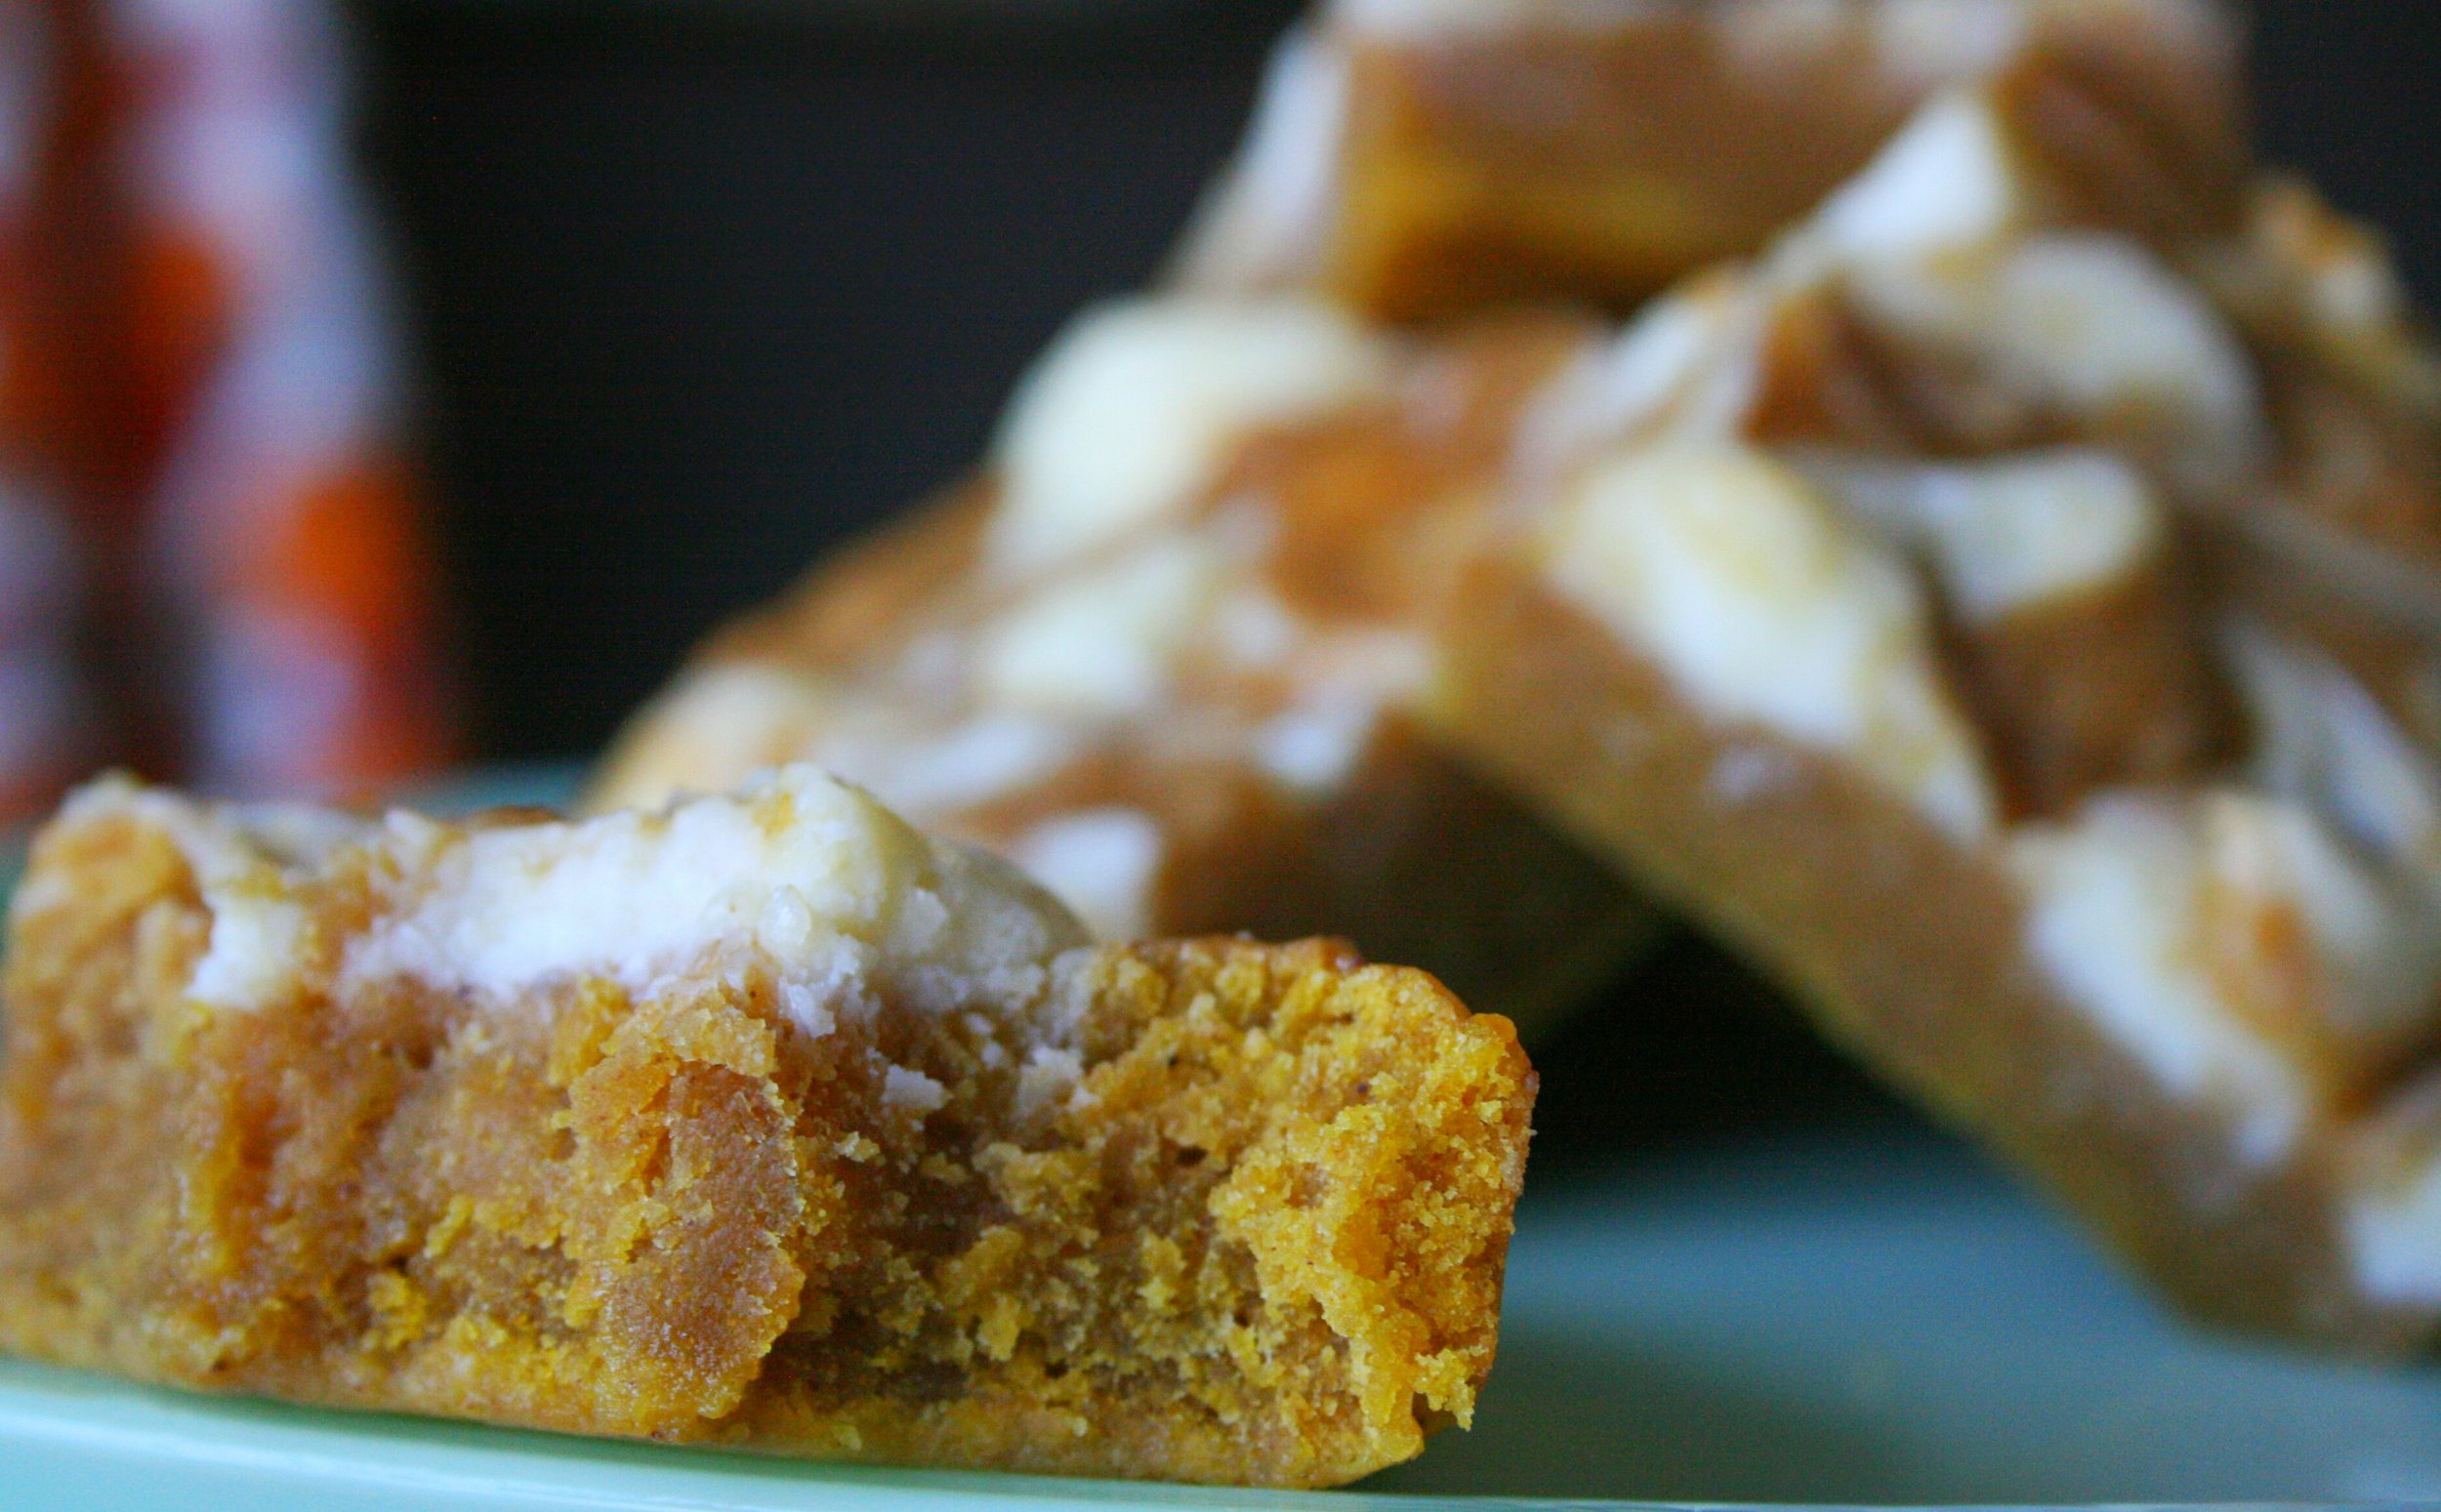 These bars taste the way Autumn feels. The comforting spices of a pumpkin pie married with the creamy tang of a smooth cheesecake with a classic, dense blondie texture.